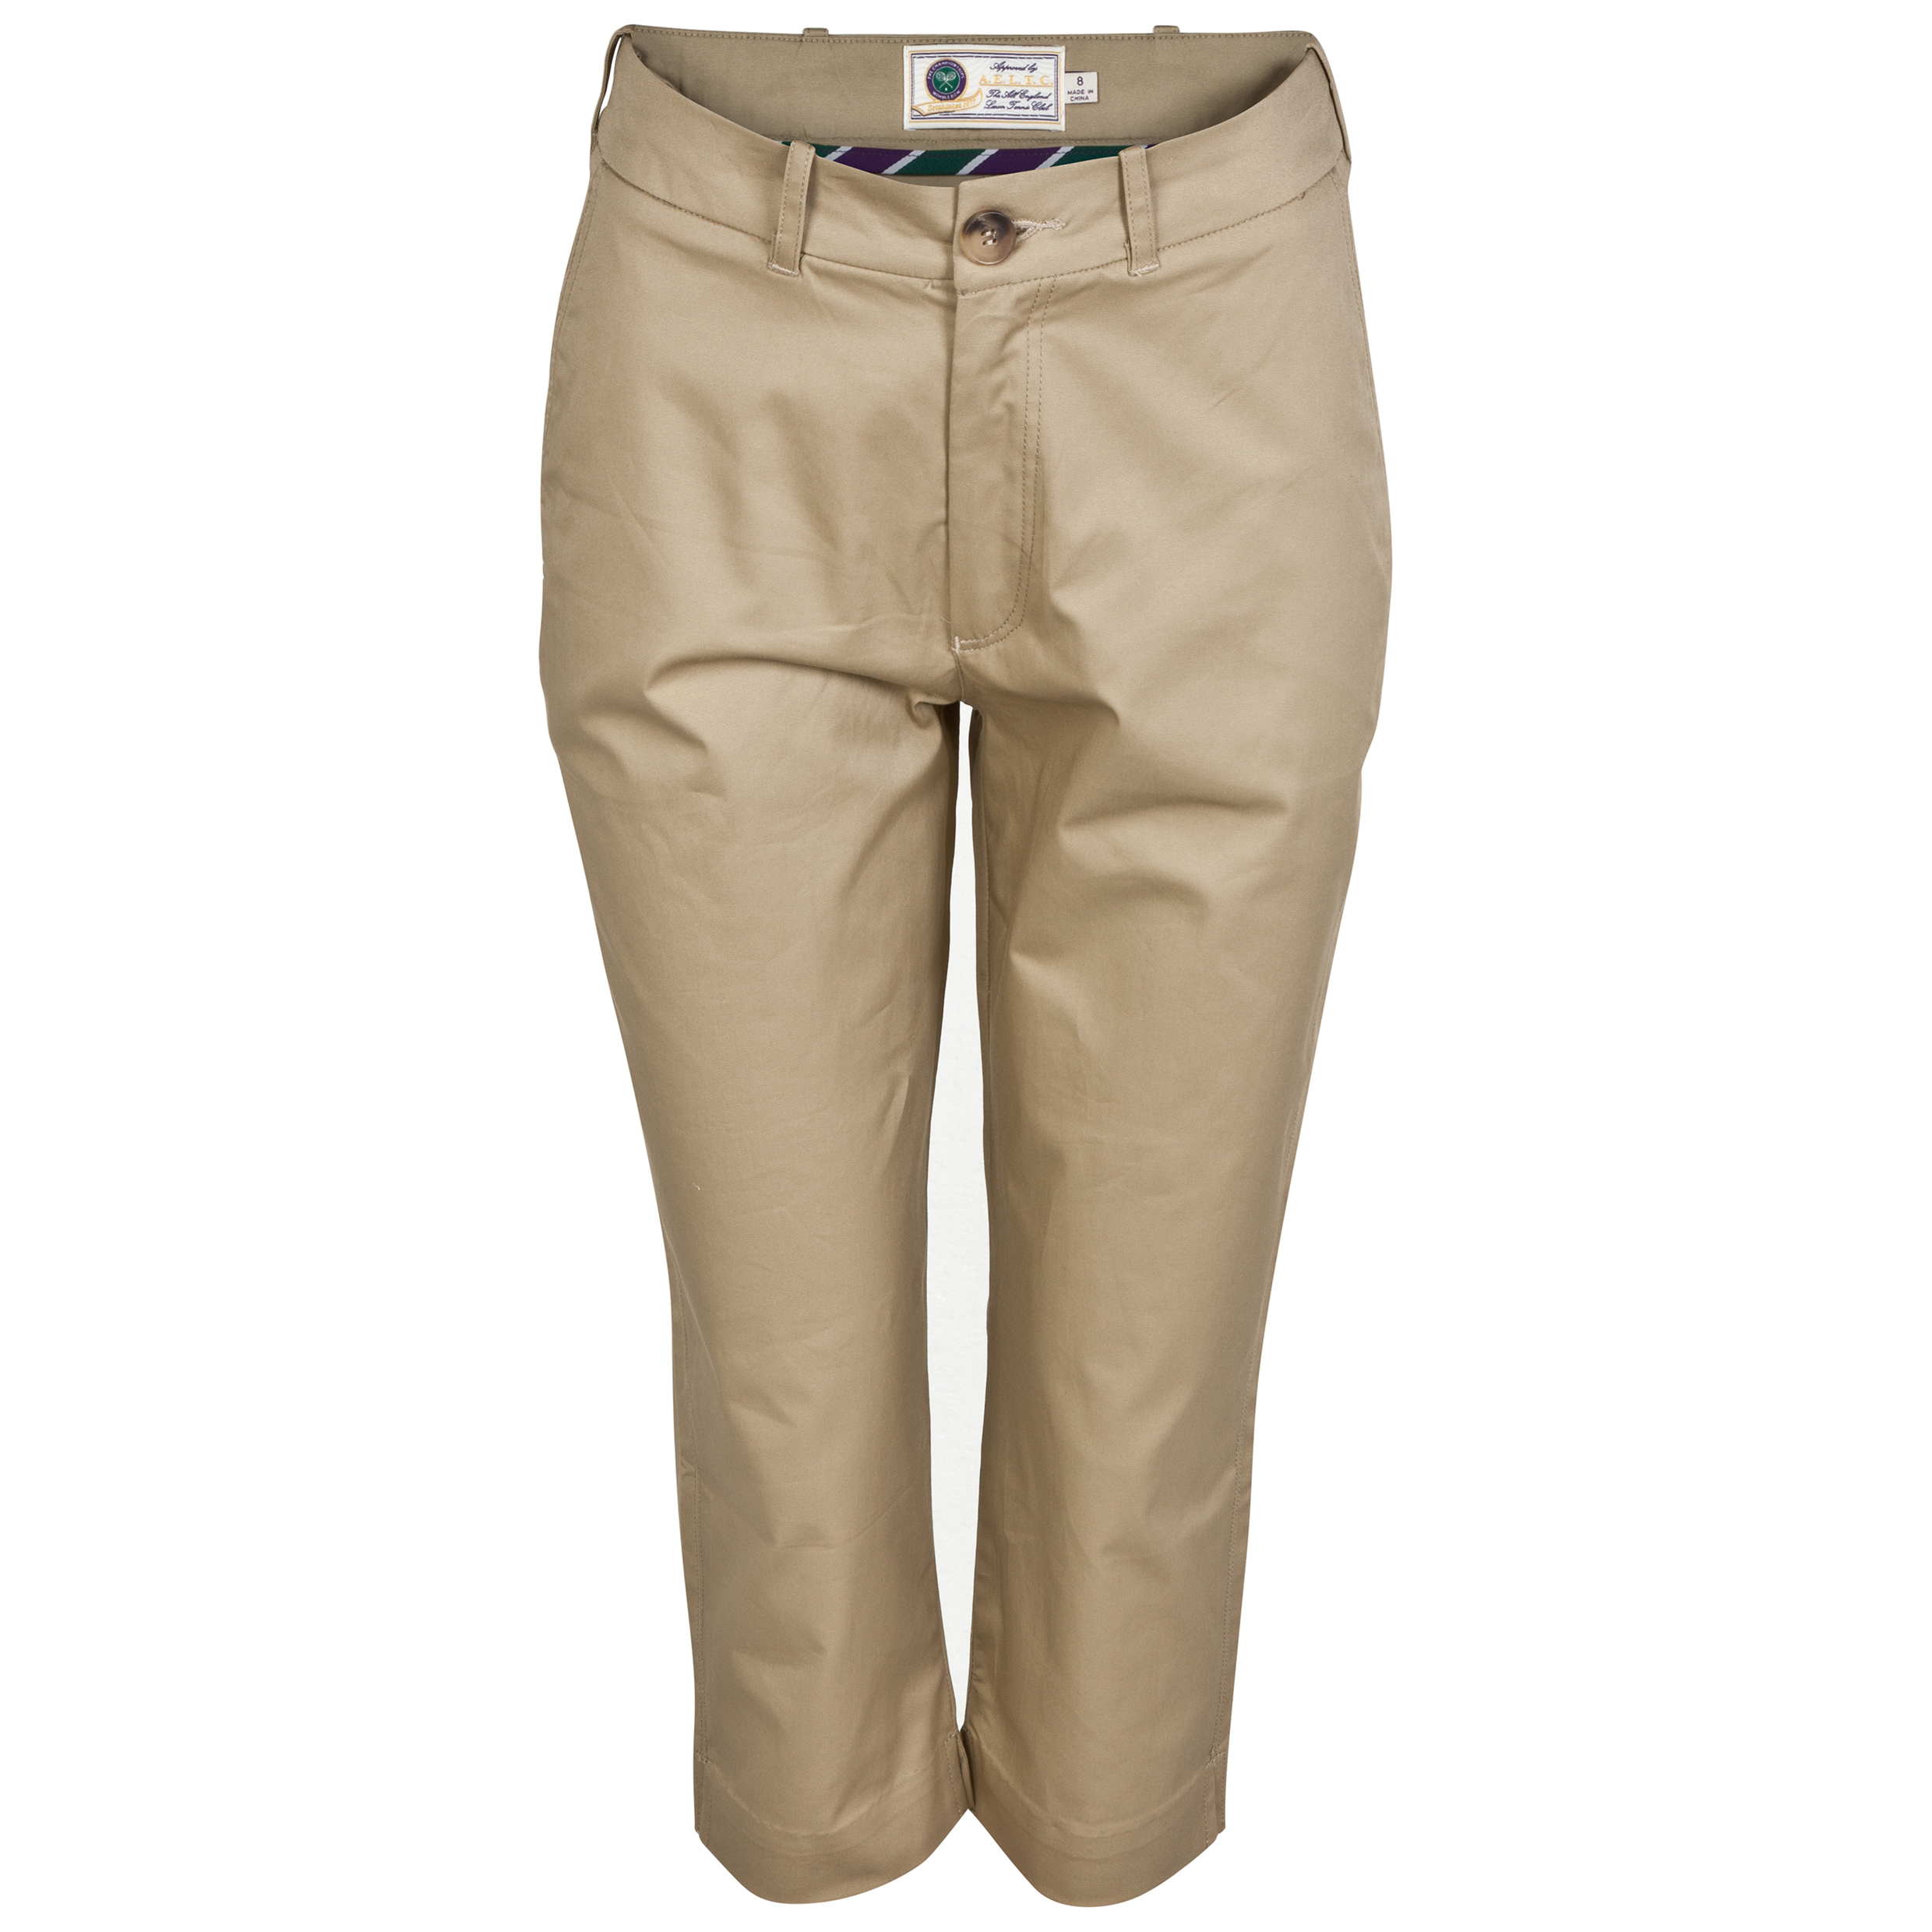 Wimbledon Tailored Capri Pants - Womens